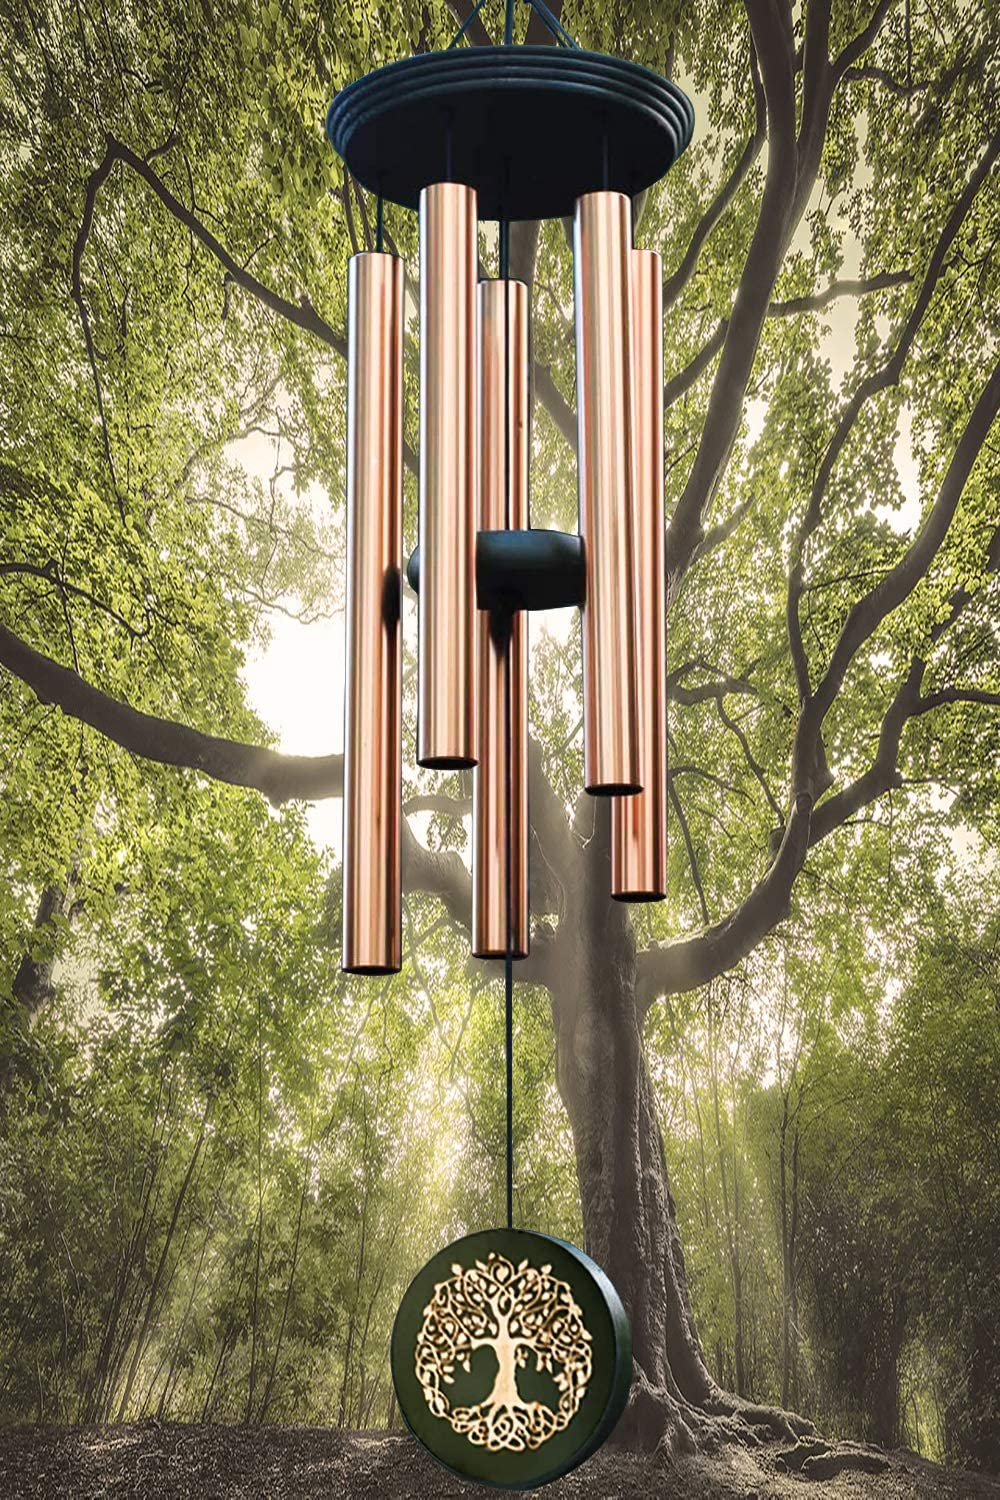 """Wind Chimes Outdoors Large Deep Tone,36"""" Memorial Wind Chimes Tree of Life Chimes in Memory of Loved One ,Sympathy Wind Chime Gifts for Mother Christmas,Unique Wind Chimes Outdoors Garden Chimes Decor"""